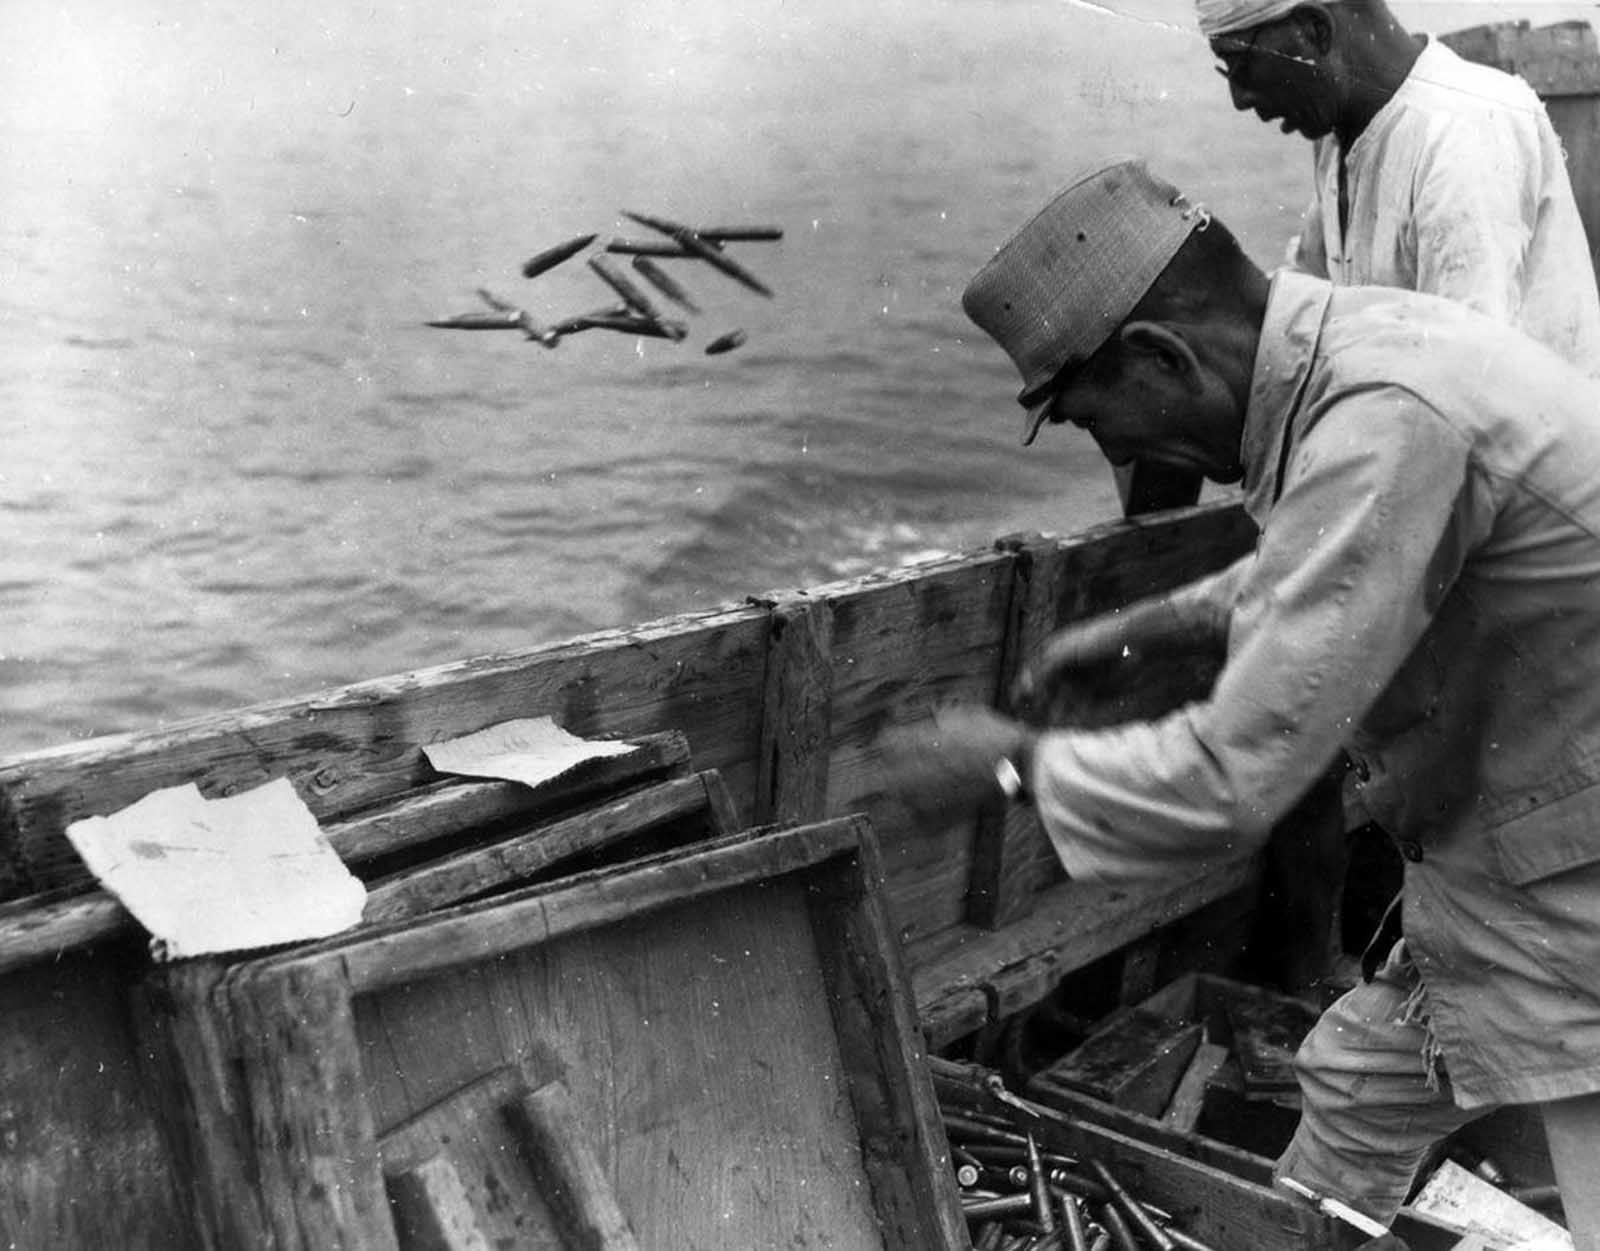 Japanese ammunition being dumped into the sea on September 21, 1945. During the U.S. occupation, almost all of the Japanese war industry and existing armament was dismantled.